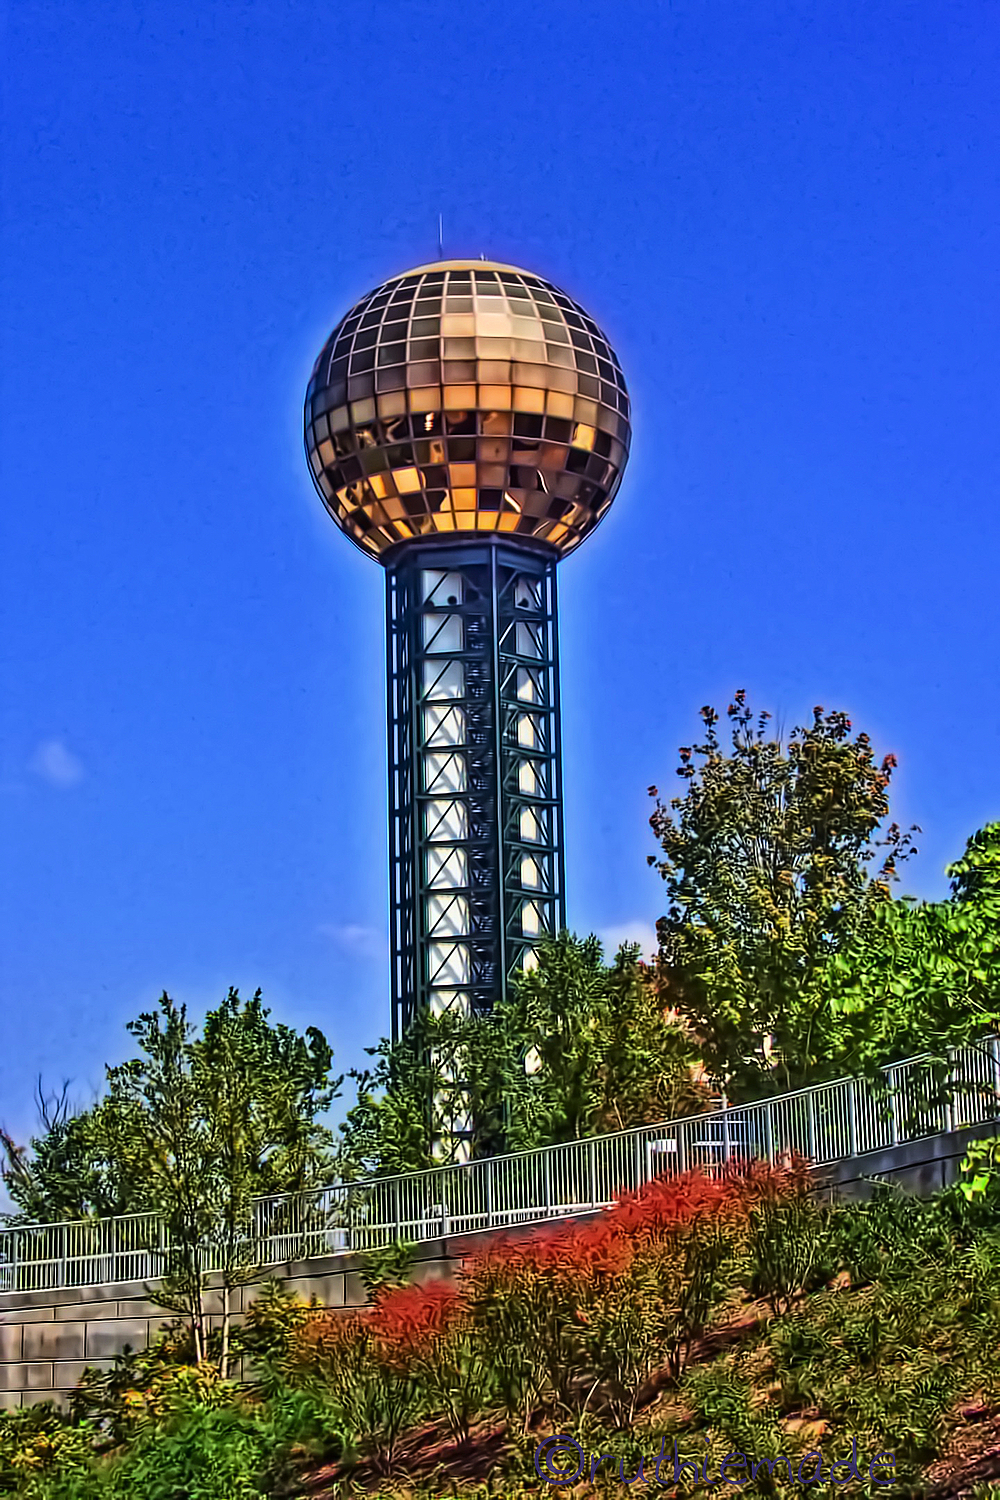 Knoxville's Golden Ball